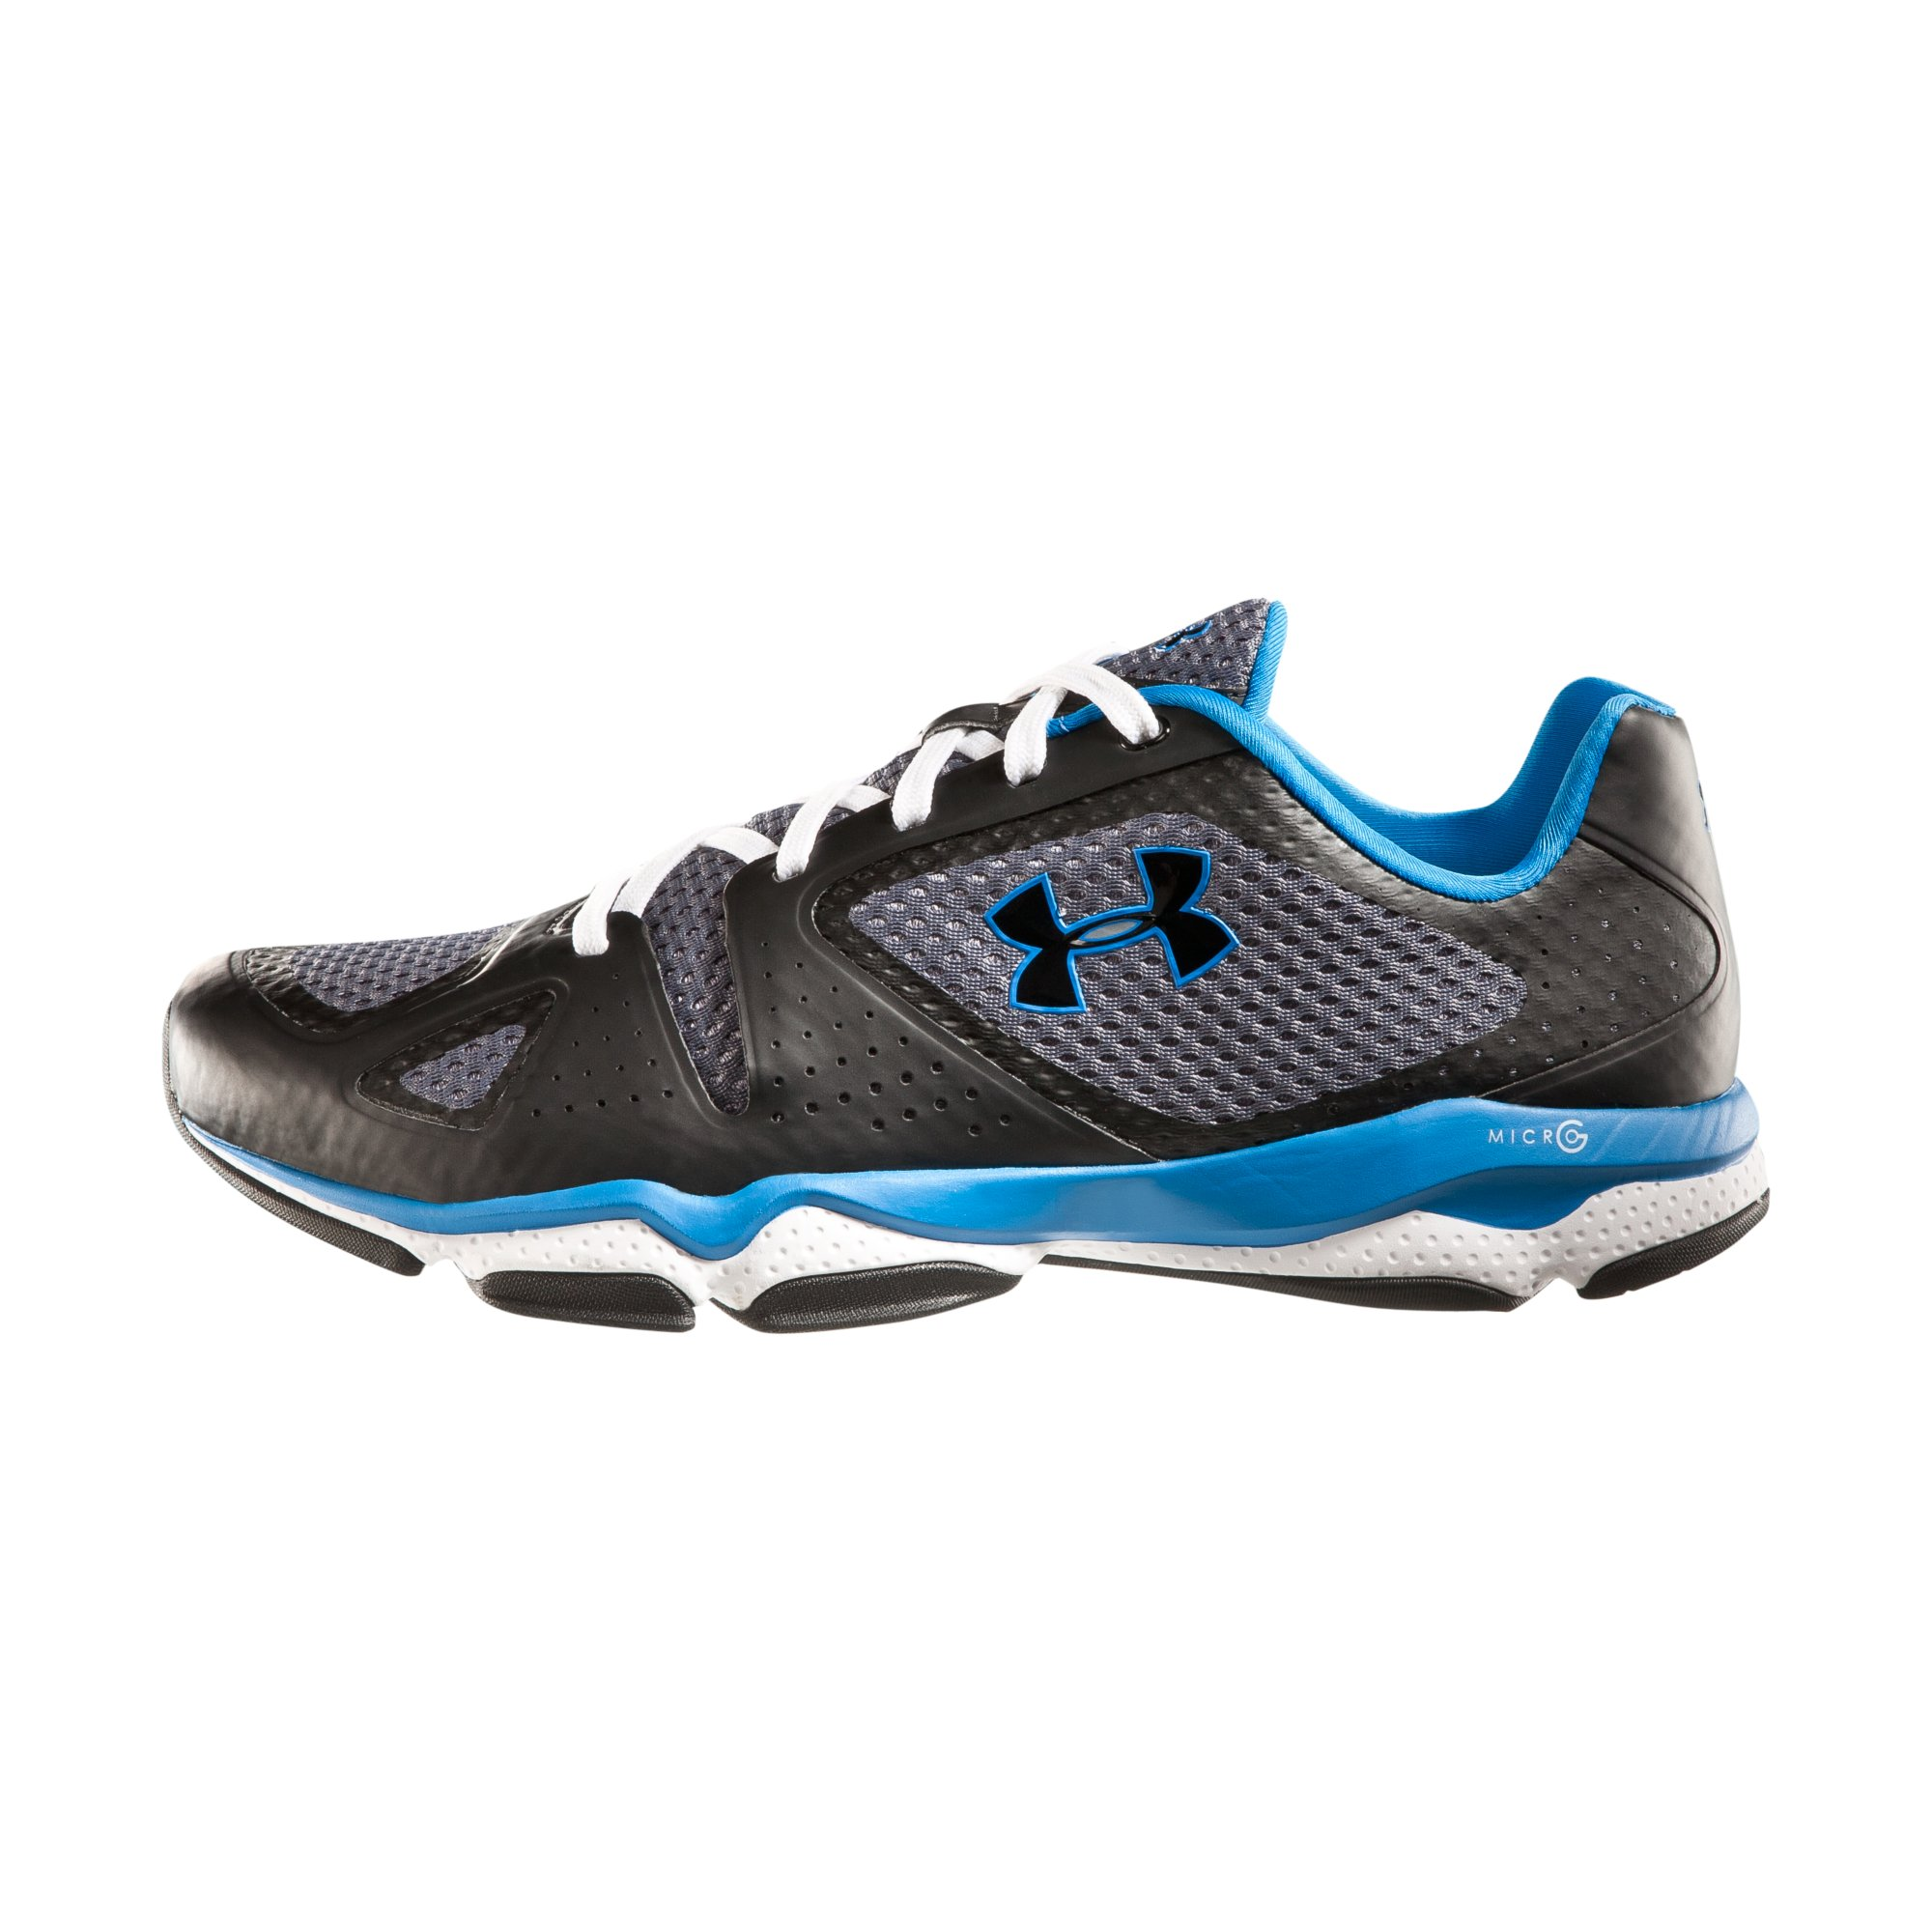 Good Under Armor Running Shoes